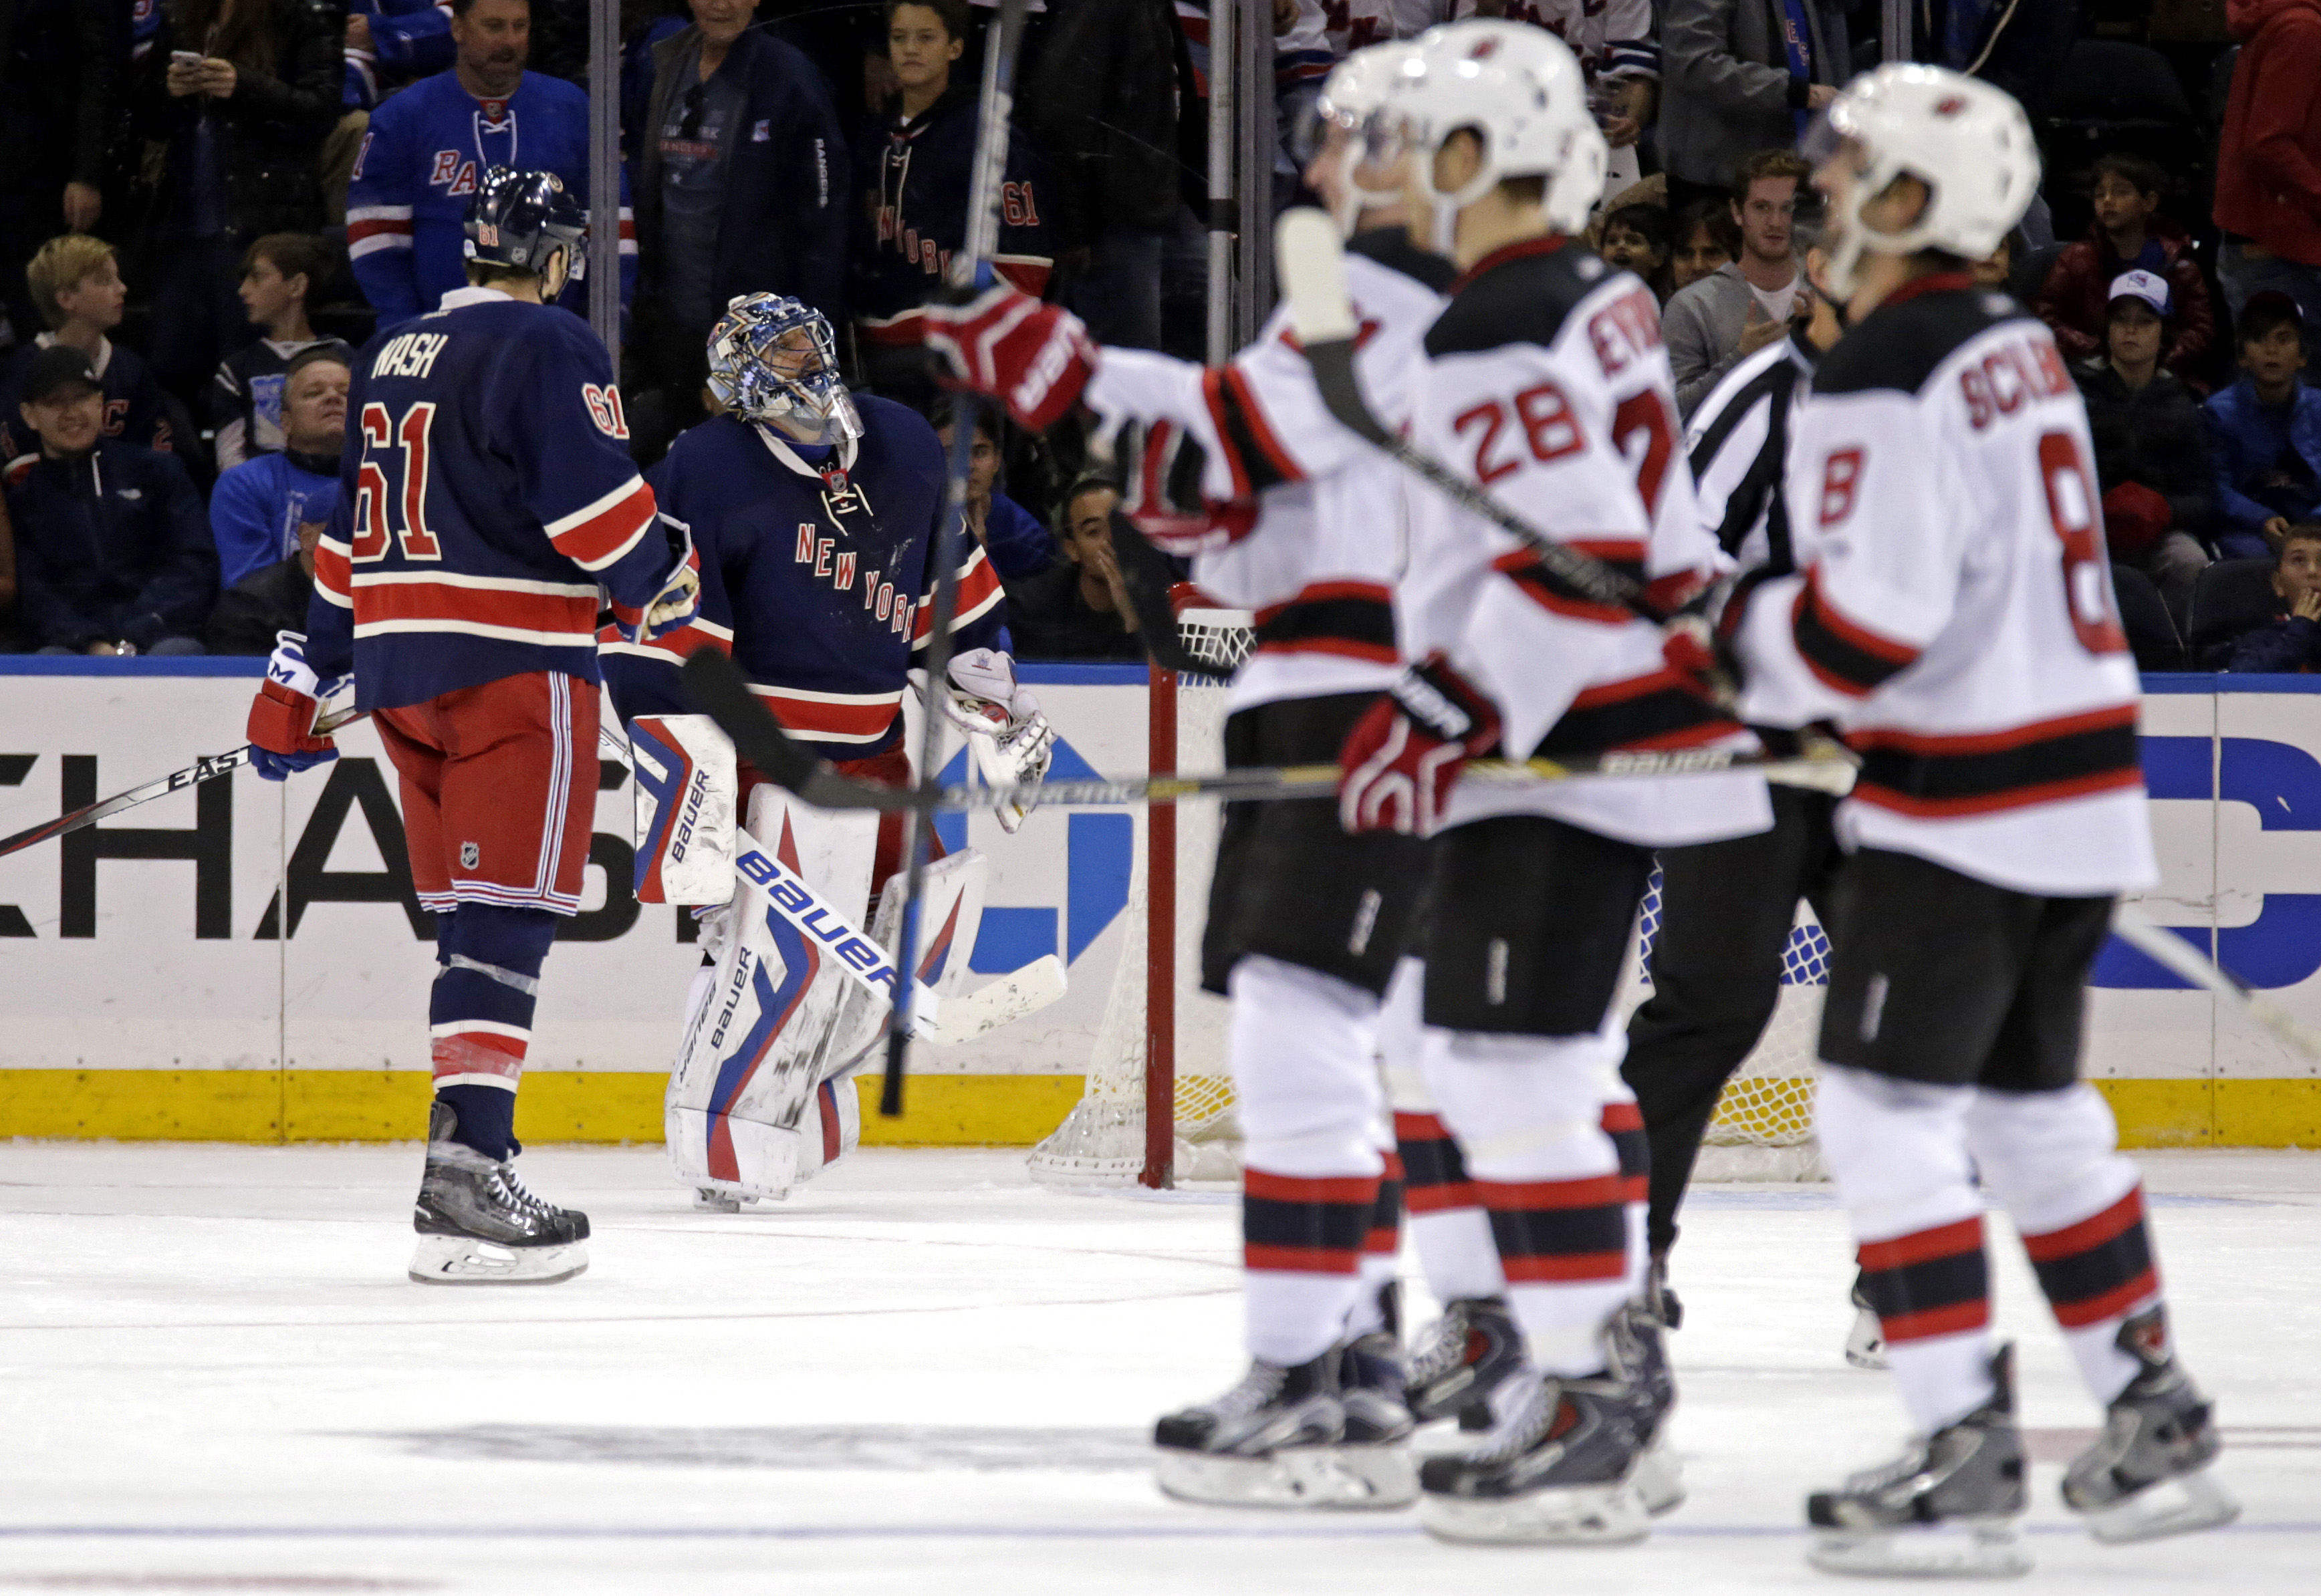 New York Rangers goalie Henrik Lundqvist, second from left, of Sweden, reacts as the New Jersey Devils celebrate after scoring a goal in overtime of an NHL hockey game at Madison Square Garden on Sunday, Oct. 18, 2015, in New York. The Devils defeated the